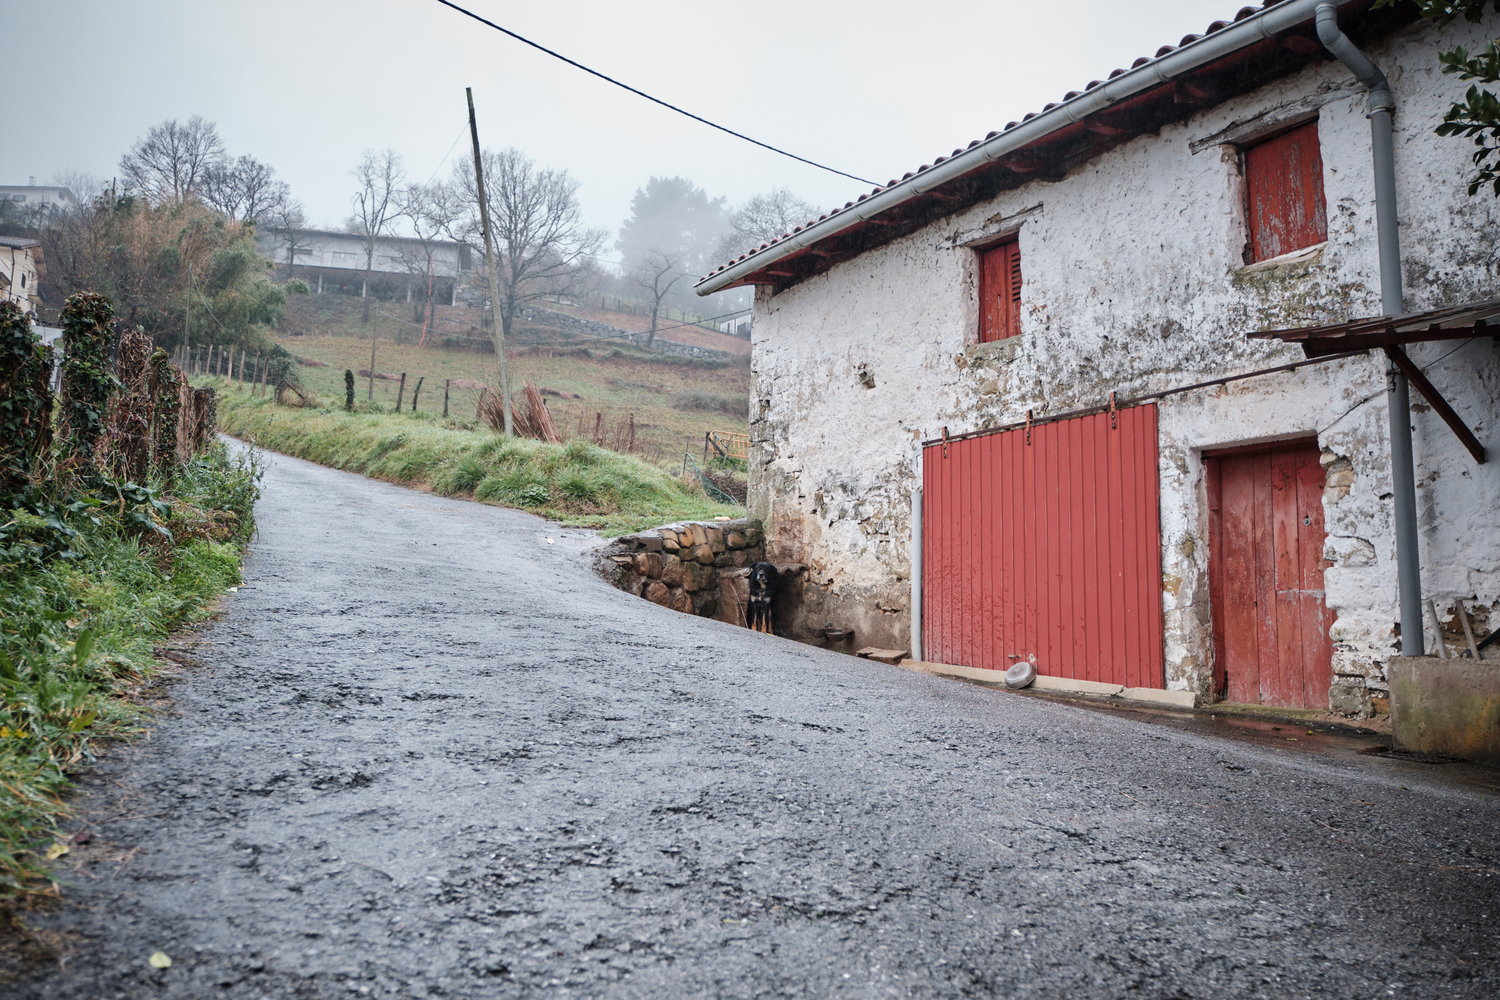 A basque traditional and old farm house with a red door and a dog.